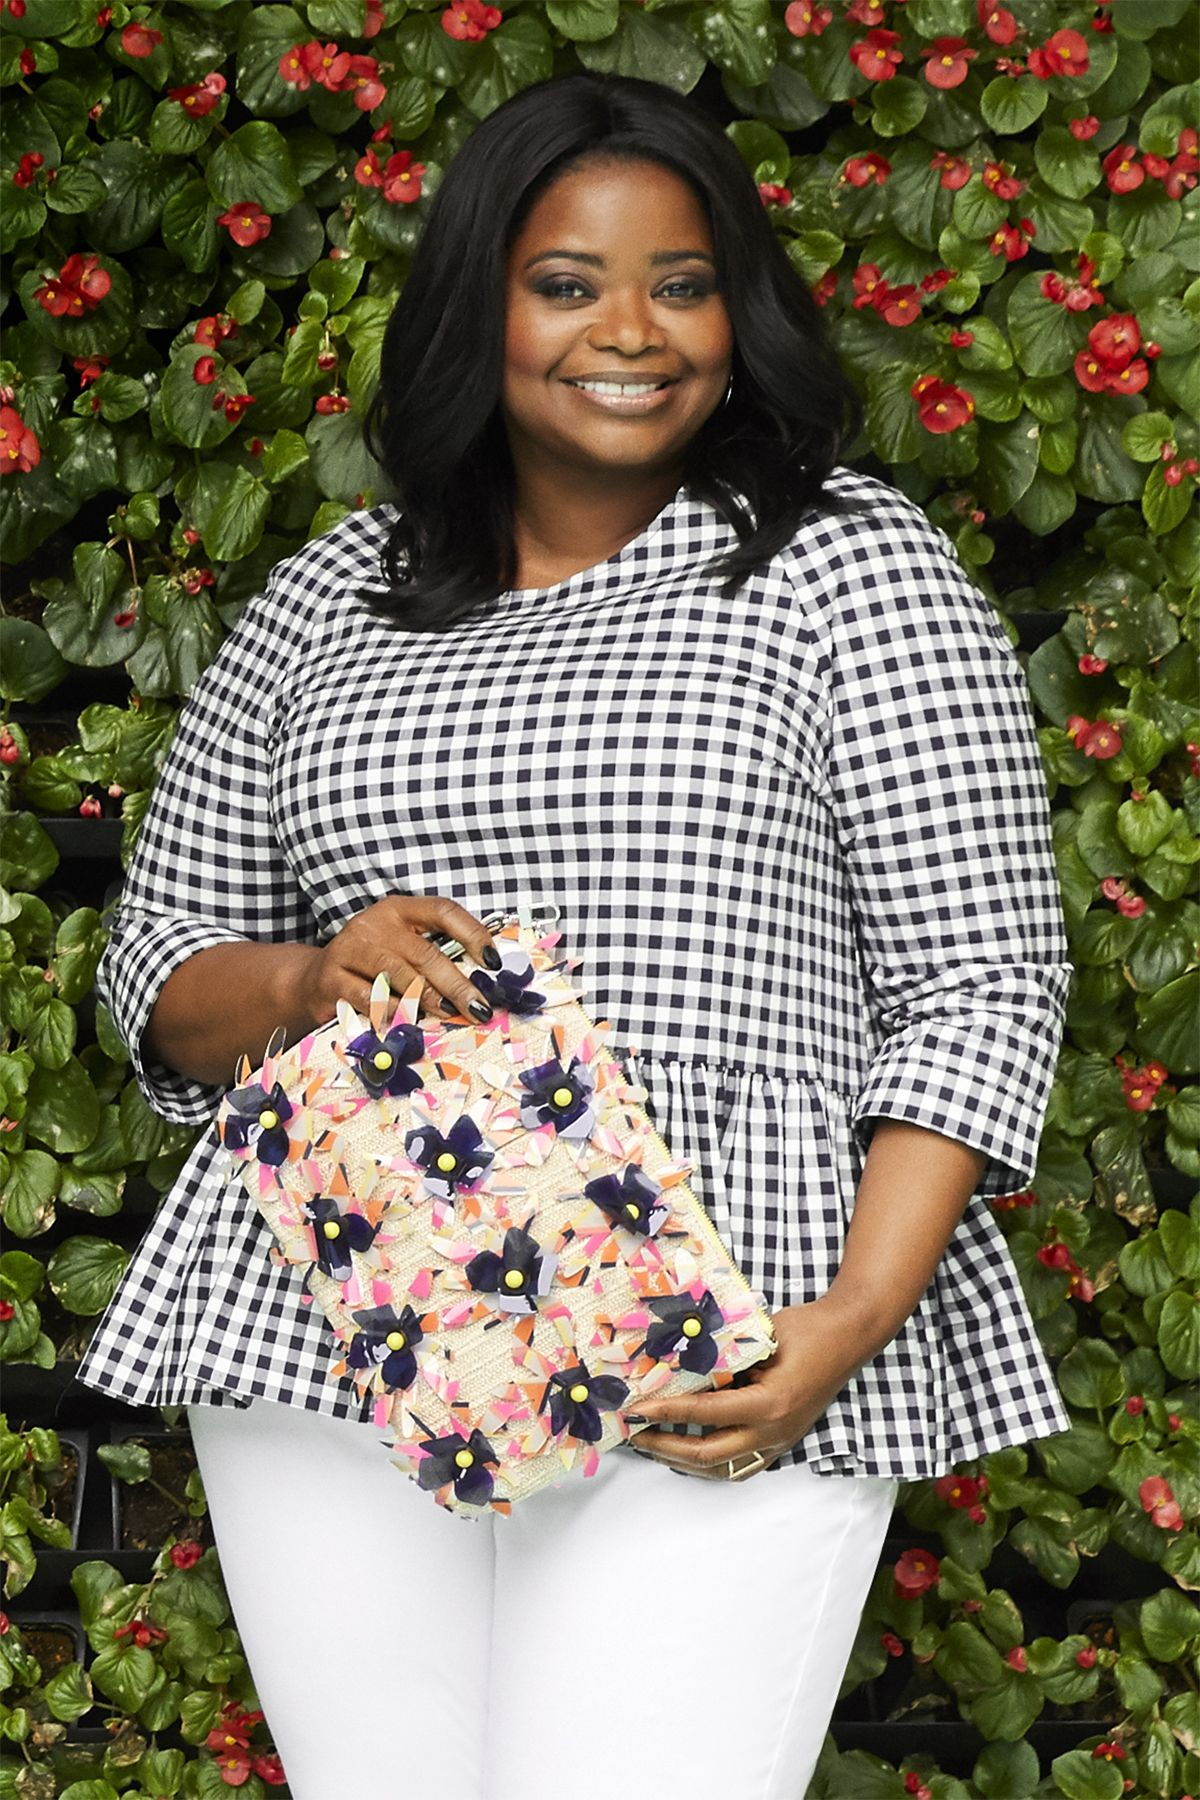 "<p>The traditional picnic&nbsp&#x3B;pattern is extra chic&nbsp&#x3B;(and figure-flattering!)&nbsp&#x3B;in a sassy peplum top.</p><p><em data-redactor-tag=""em"" data-verified=""redactor""><strong data-redactor-tag=""strong"" data-verified=""redactor"">Top, </strong>Victoria Beckham for Target, $28, <a href=""http://www.target.com"" target=""_blank"" data-tracking-id=""recirc-text-link"">target.com</a>. <strong data-redactor-tag=""strong"" data-verified=""redactor"">Jeans,</strong> $50,<a href=""http://www.ashleystewart.com"" target=""_blank"" data-tracking-id=""recirc-text-link"">ashleystewart.com</a>. <strong data-redactor-tag=""strong"" data-verified=""redactor"">Clutch, </strong>$118, <a href=""http://www.trinaturk.com"" target=""_blank"" data-tracking-id=""recirc-text-link"">trinaturk.com</a>. <strong data-redactor-tag=""strong"" data-verified=""redactor"">Ring, </strong>$60, <a href=""http://www.shopshashi.com"" target=""_blank"" data-tracking-id=""recirc-text-link"">shopshashi.com</a>.&nbsp&#x3B;</em></p>"